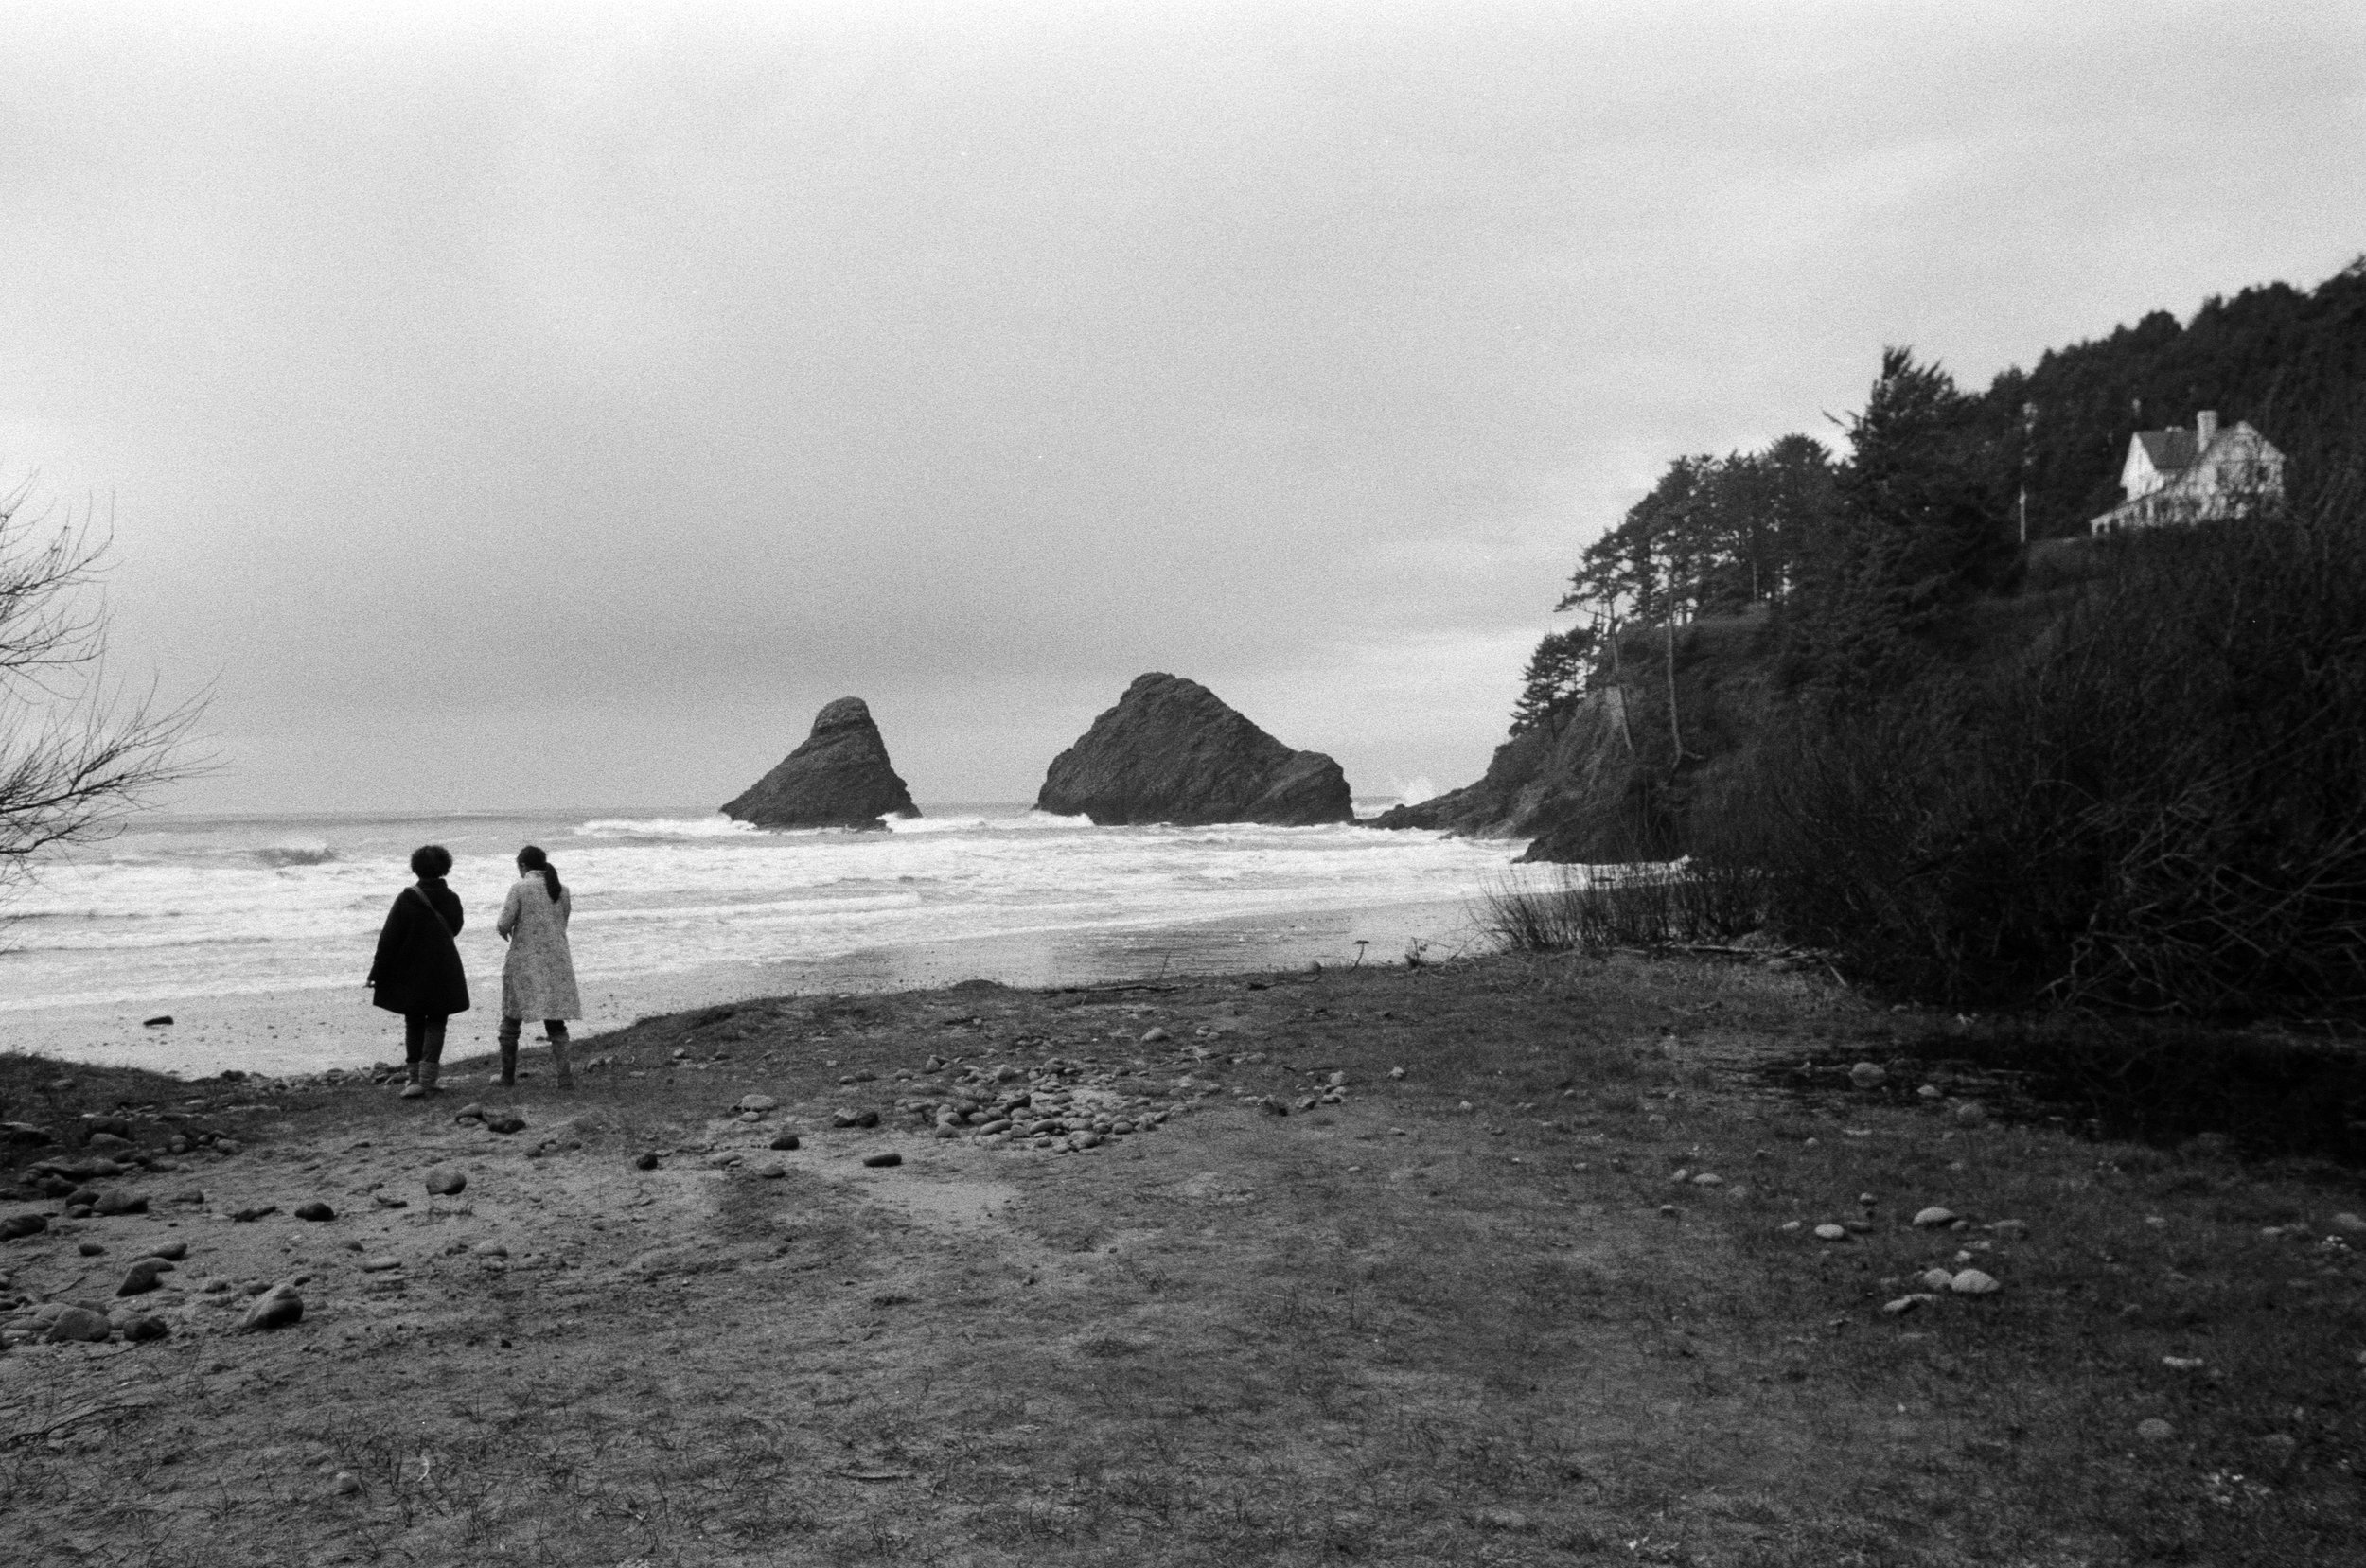 Ilford_Roll01_PNW_2019_018.jpg